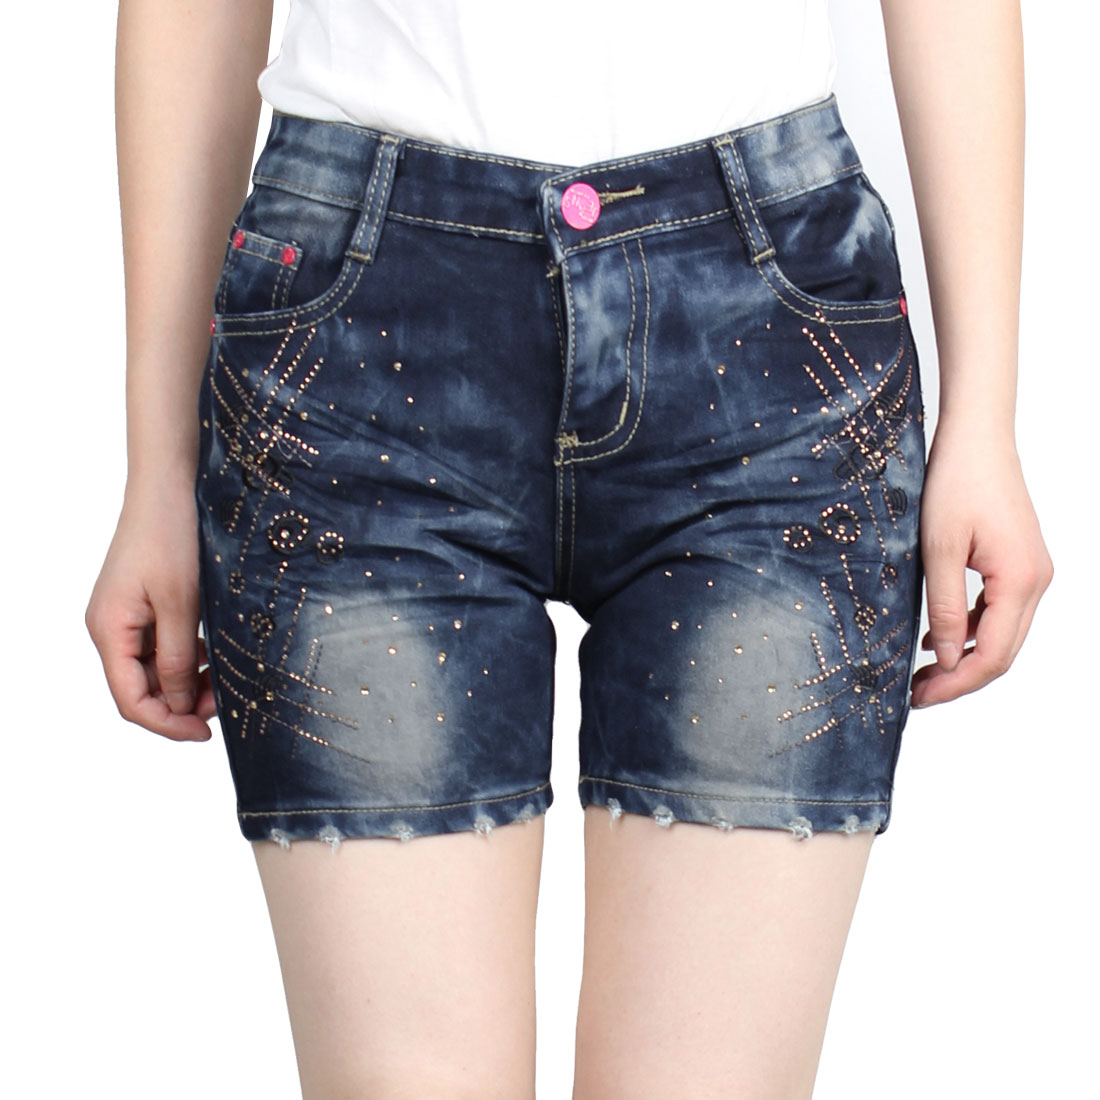 Summer Belt Loop Slanting Pockets Short Jeans Dark Blue S for Ladies